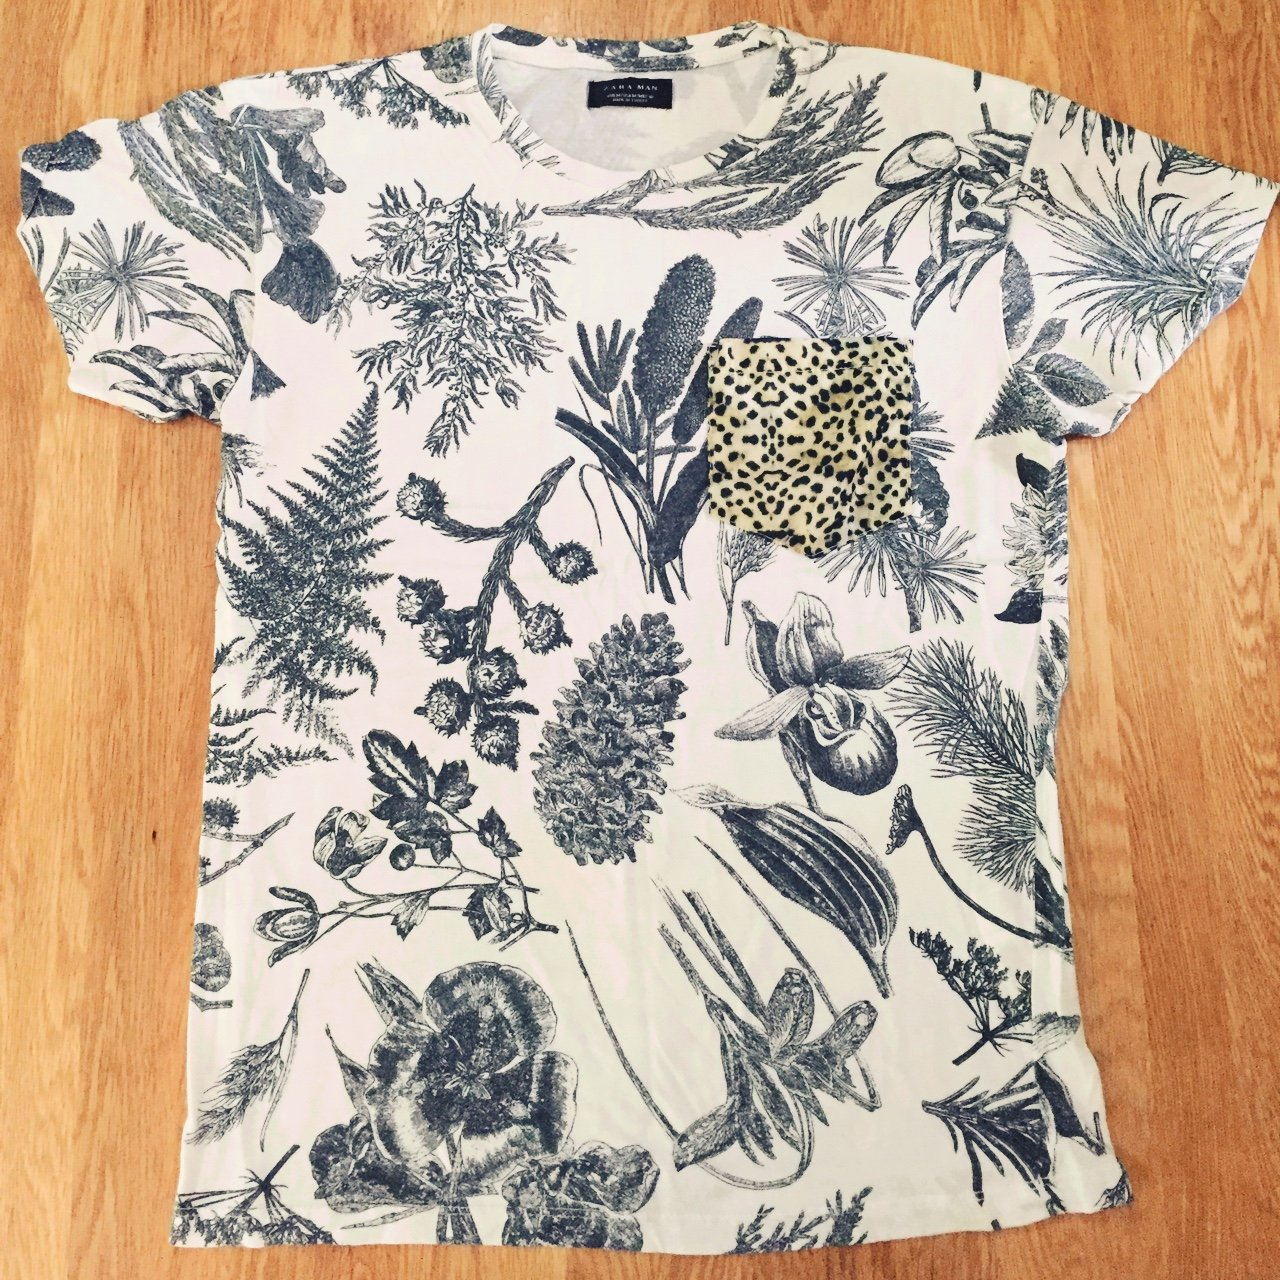 f8ac0094da051 Men s green white floral Zara tee with leopard-print pocket - Depop